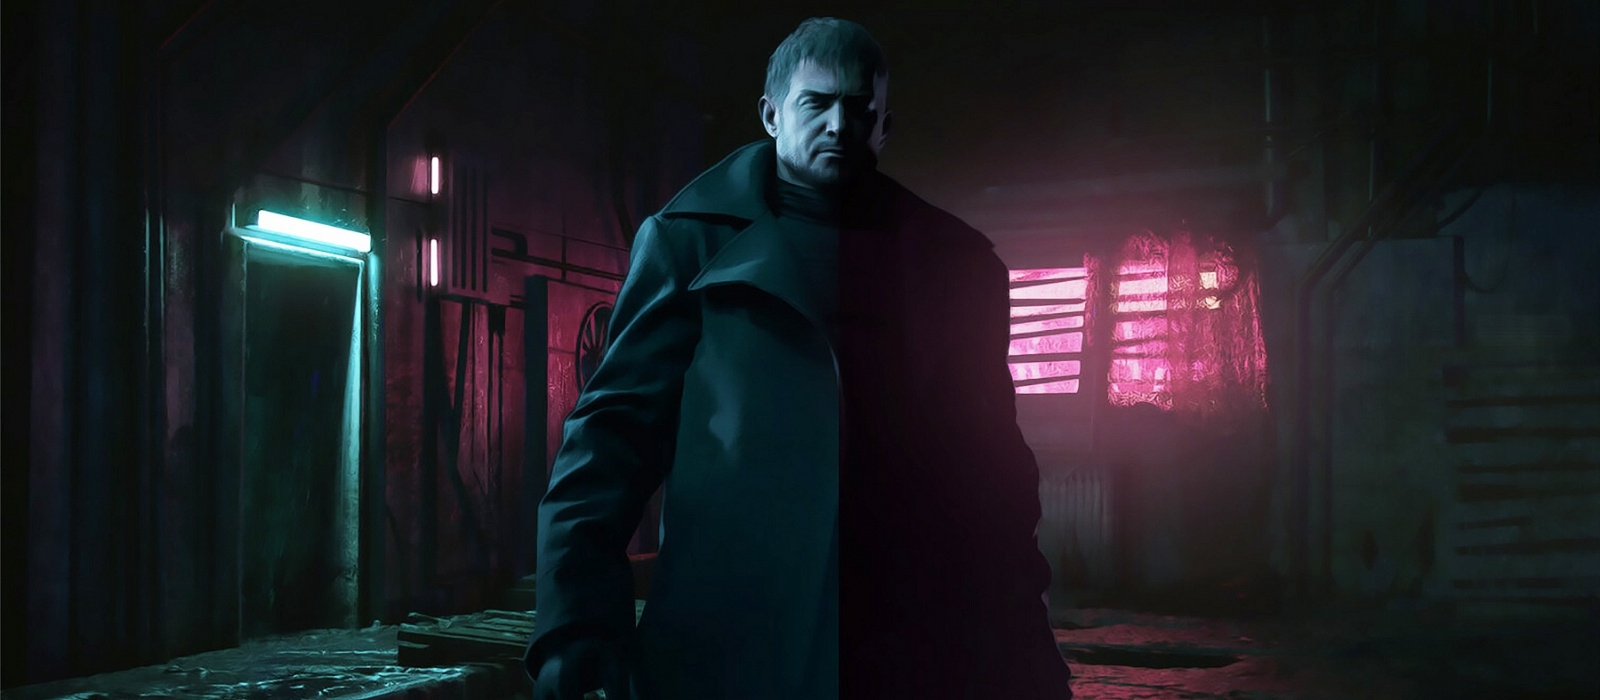 How To Unlock The Mercenaries Mode In Resident Evil Village And Get The Argument Lightsaber